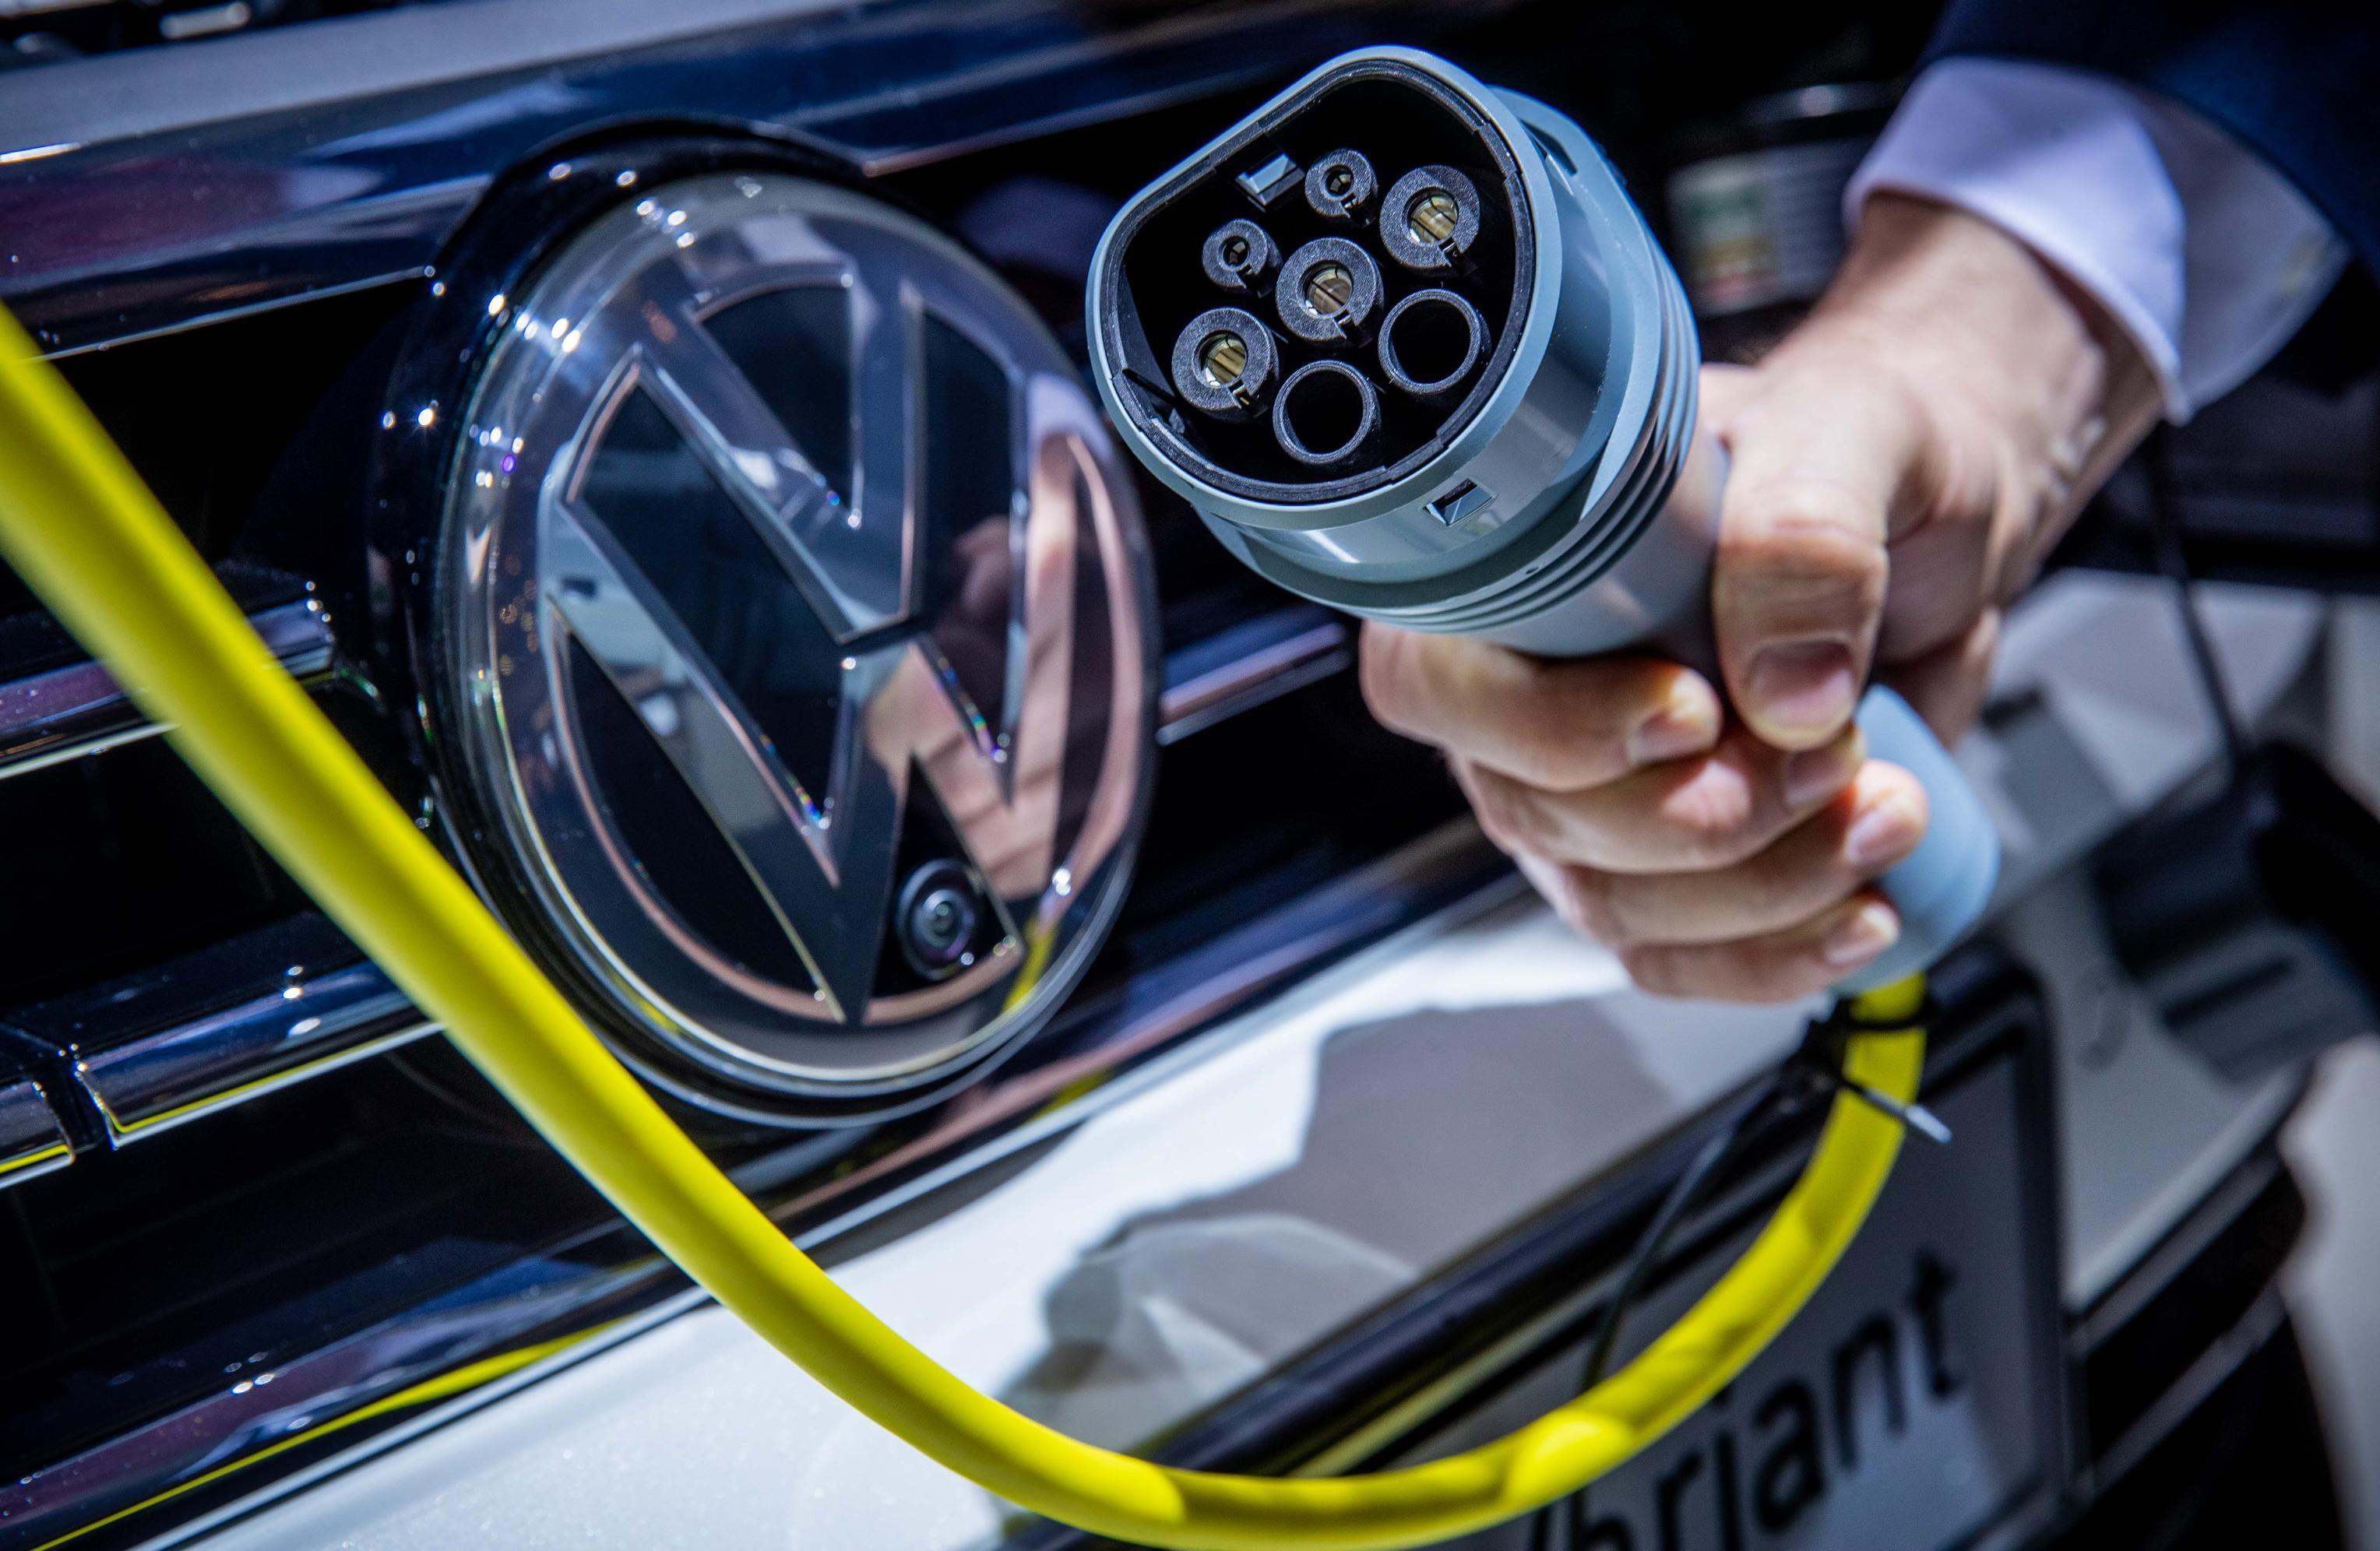 The cost of charging an electric car at work can vary between organisations